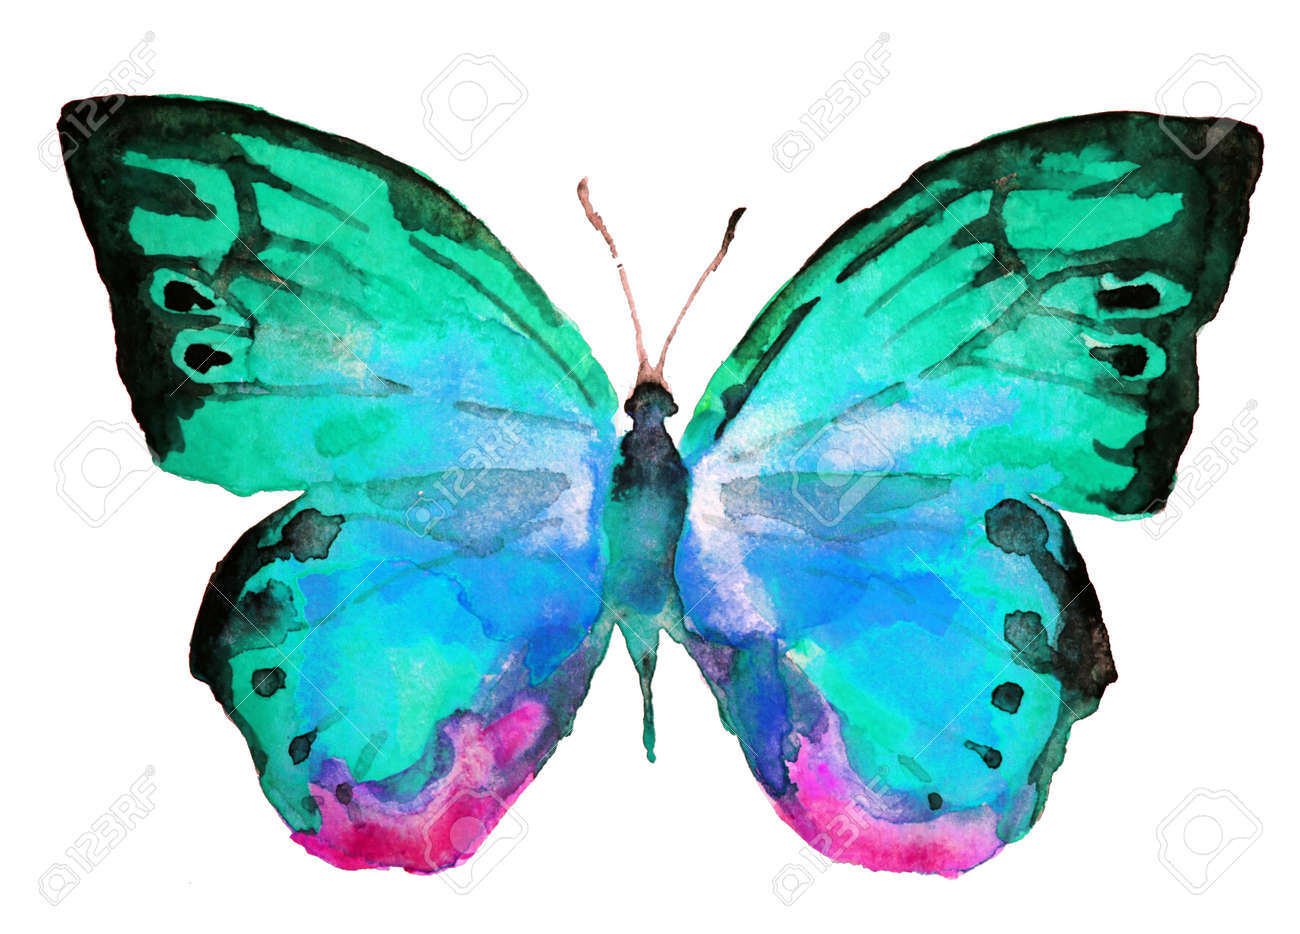 150 085 butterfly cliparts stock vector and royalty free